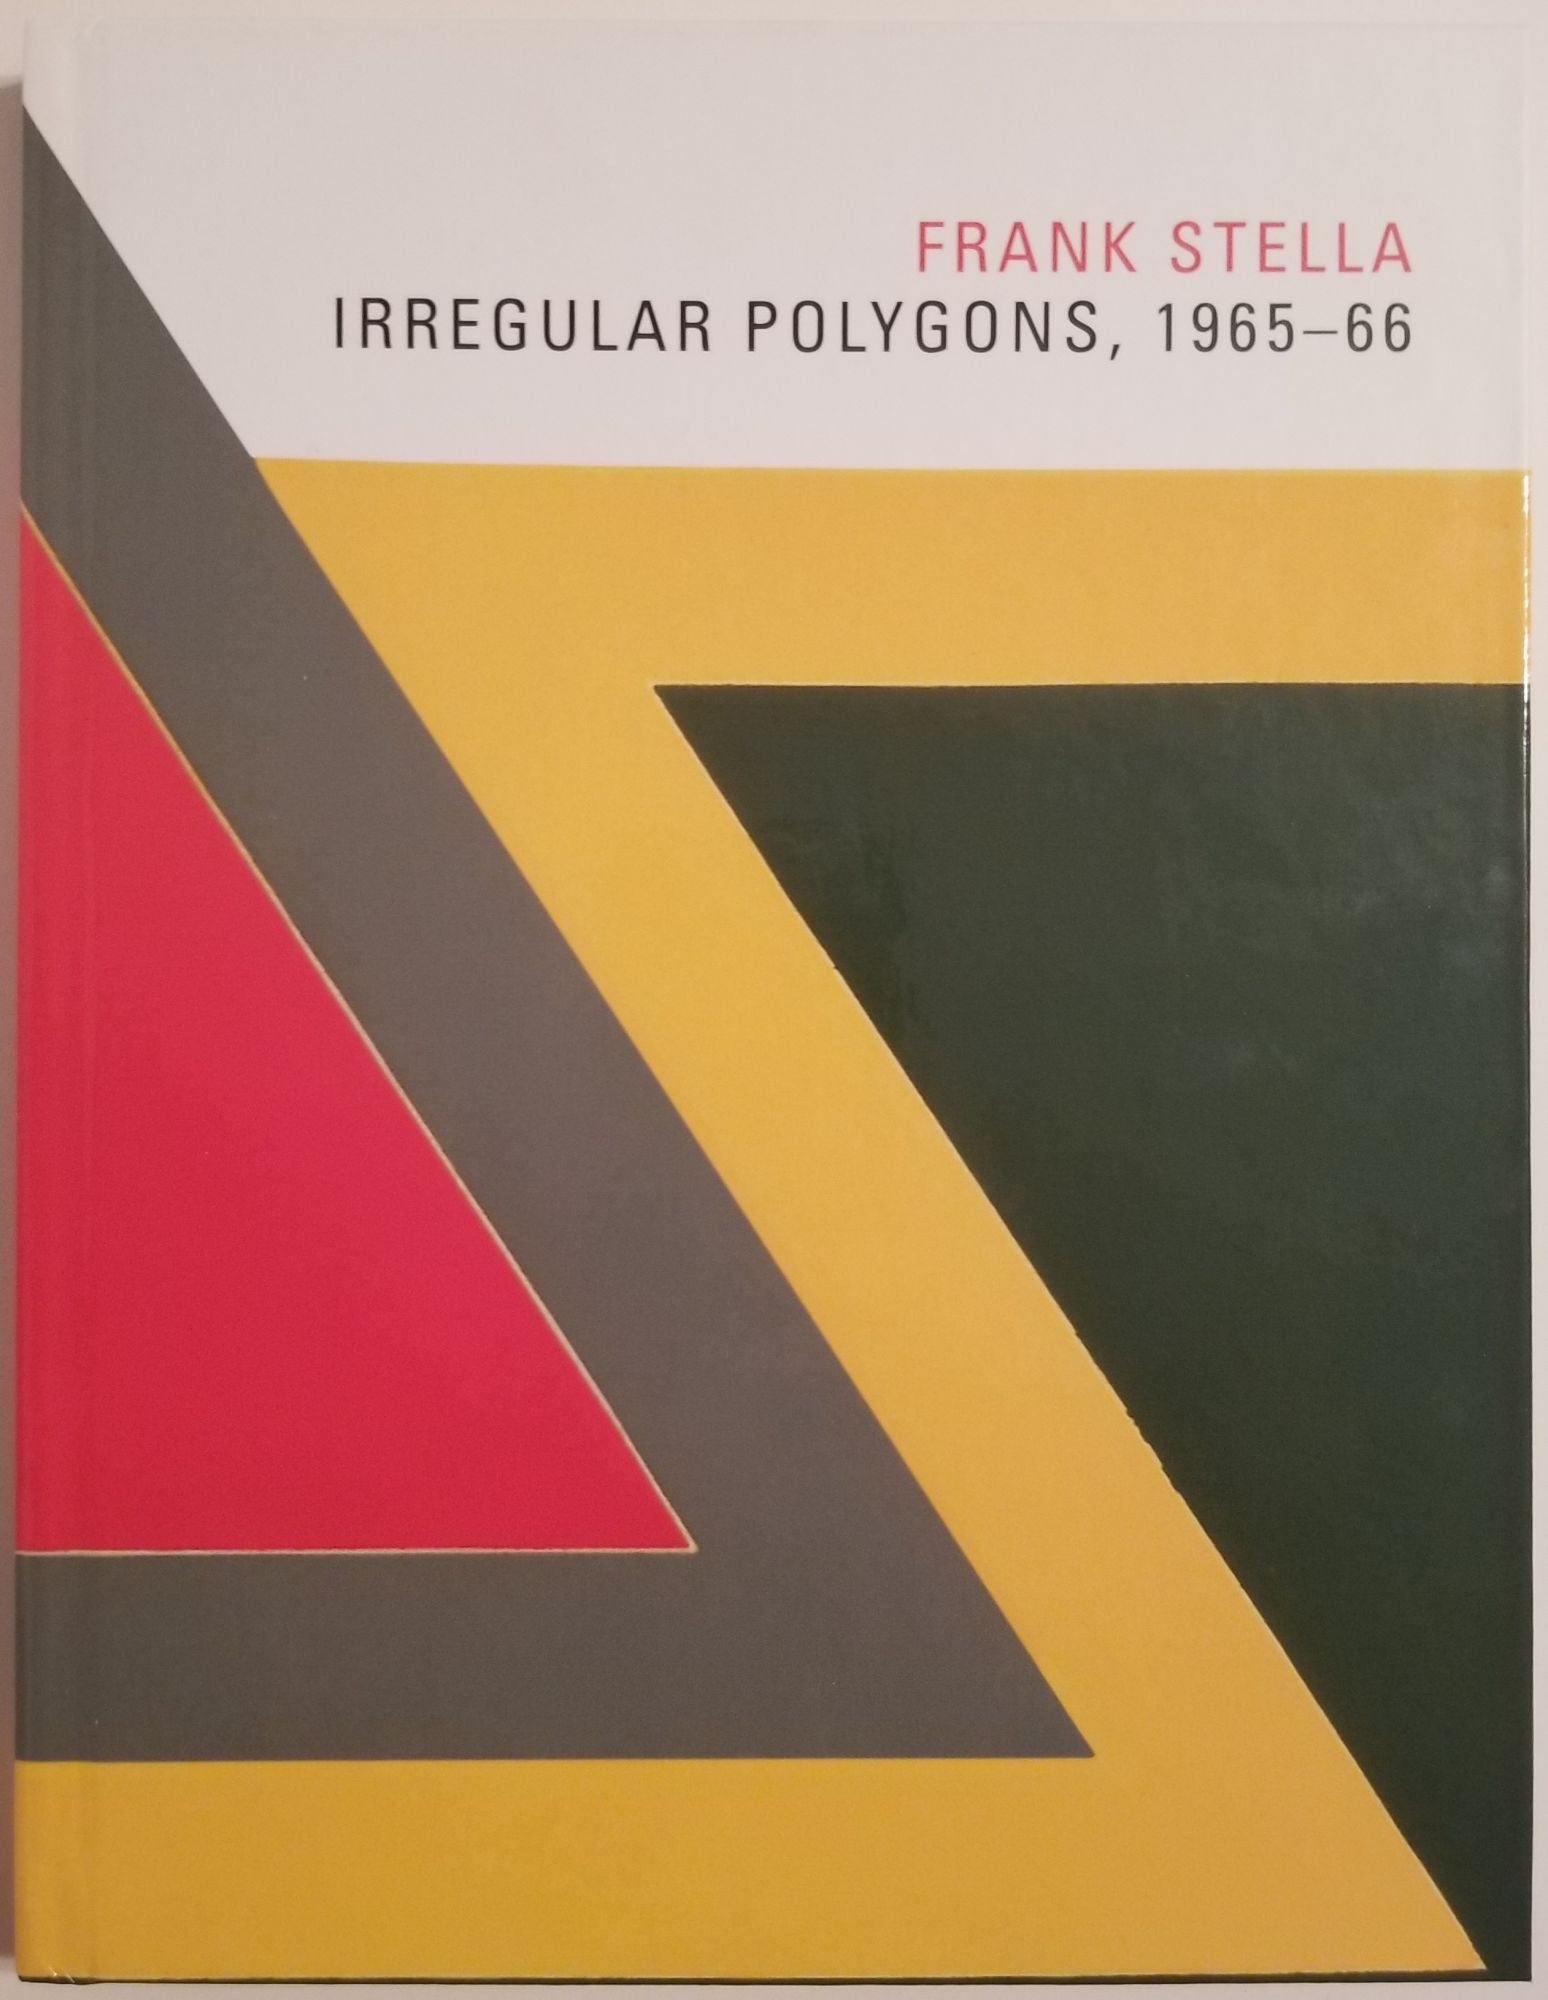 FRANK STELLA: Irregular Polygons, 1965-66. Catalogue of an Exhibition of Stella works at the Hood Museum of Art at Dartmouth College. Frank Stella, Brian P. Kennedy.